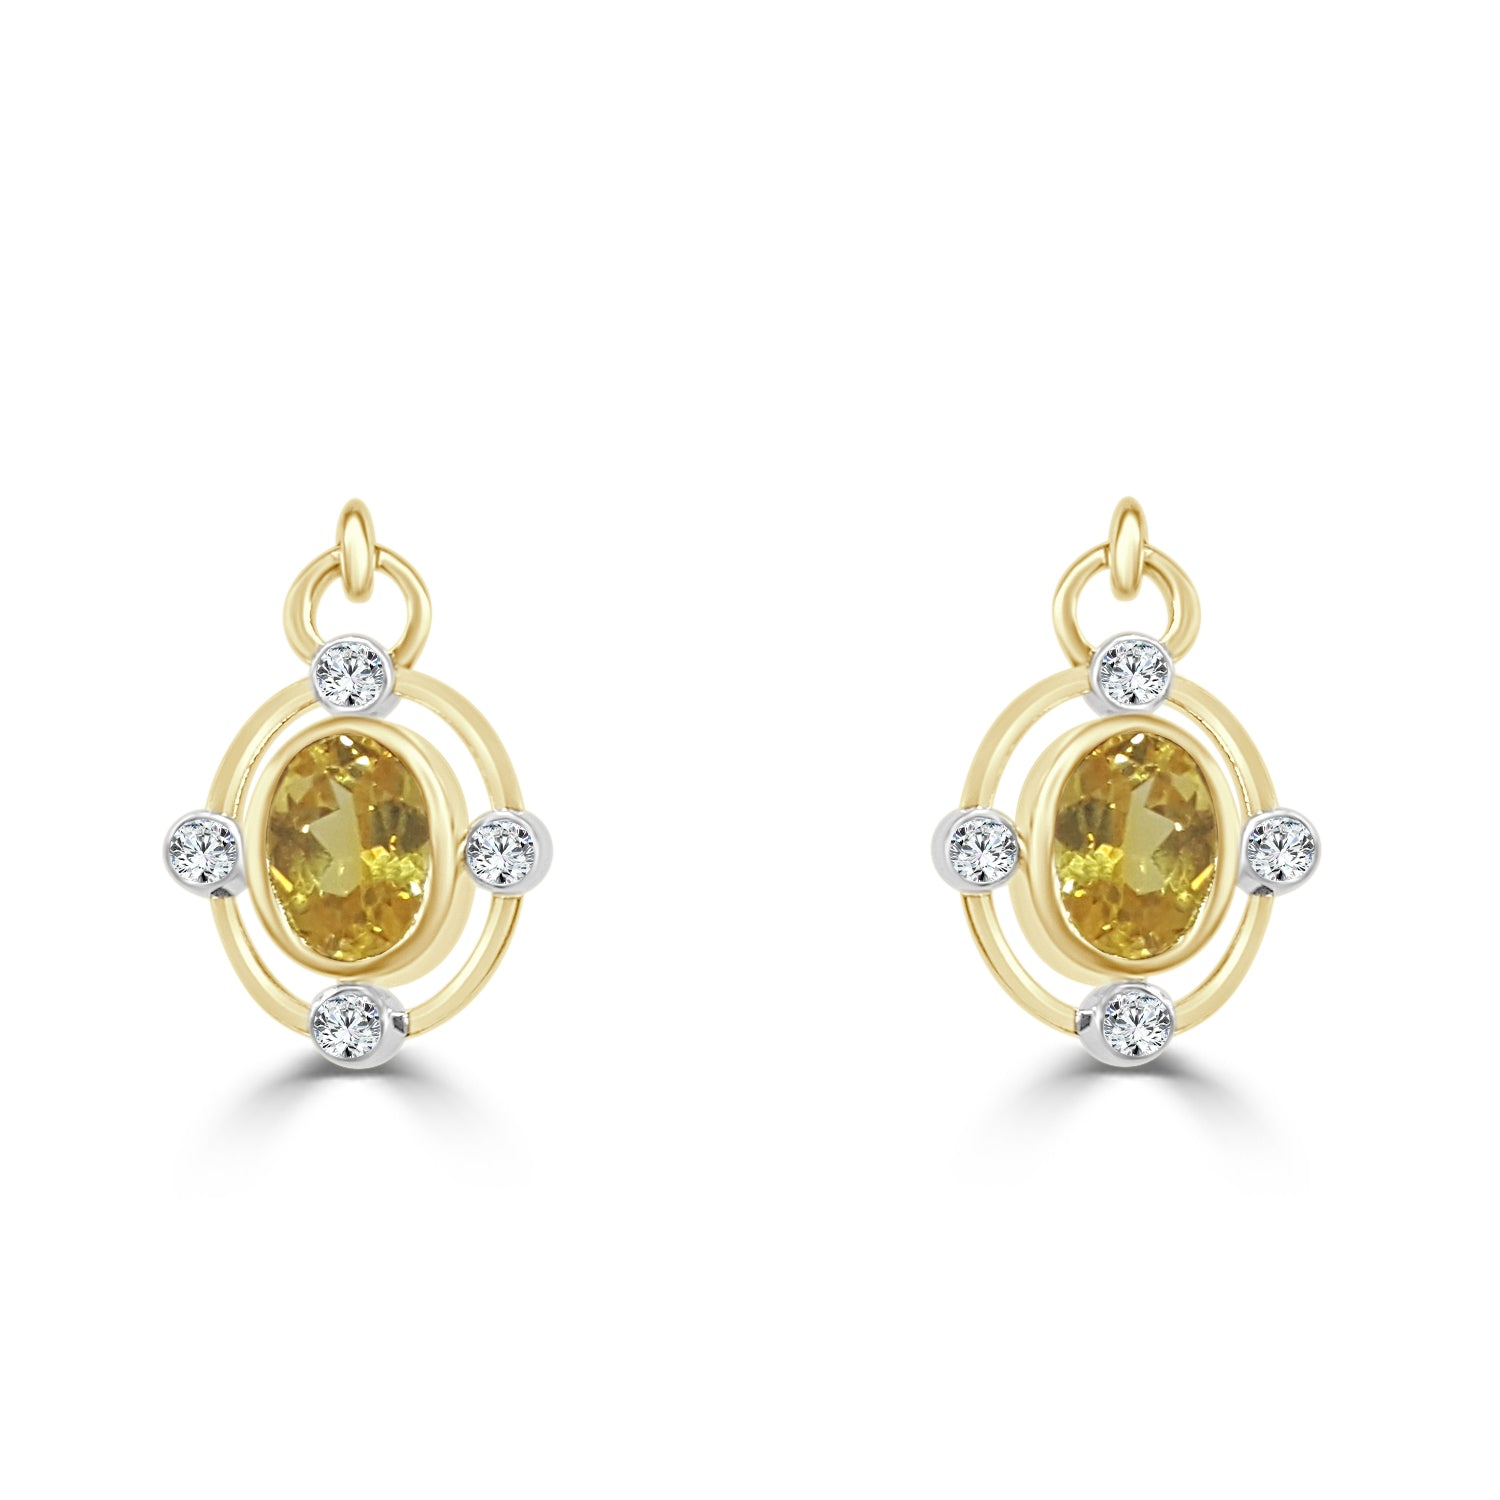 image hera product earrings boutique yellow diamond sapphire